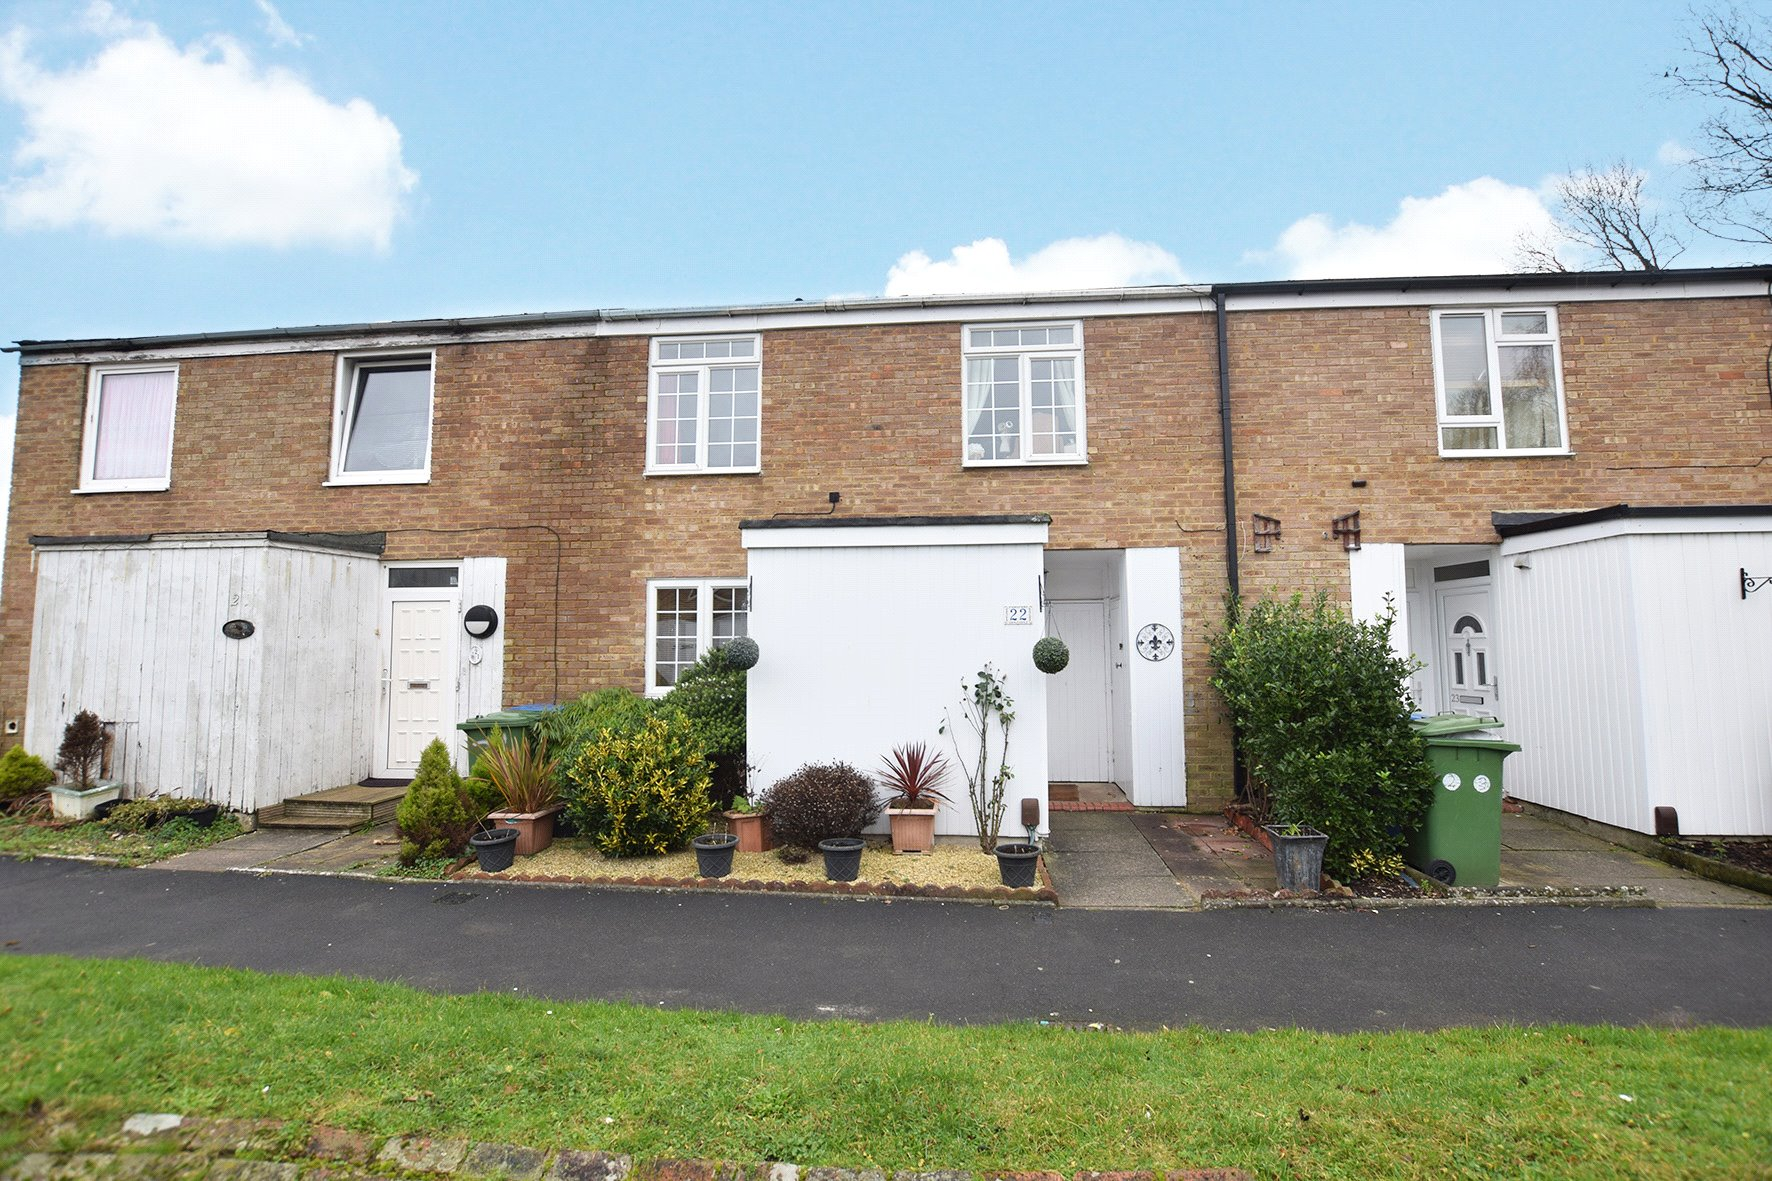 3 Bedrooms Terraced House for sale in Holbeck, Great Hollands, Bracknell, Berkshire, RG12